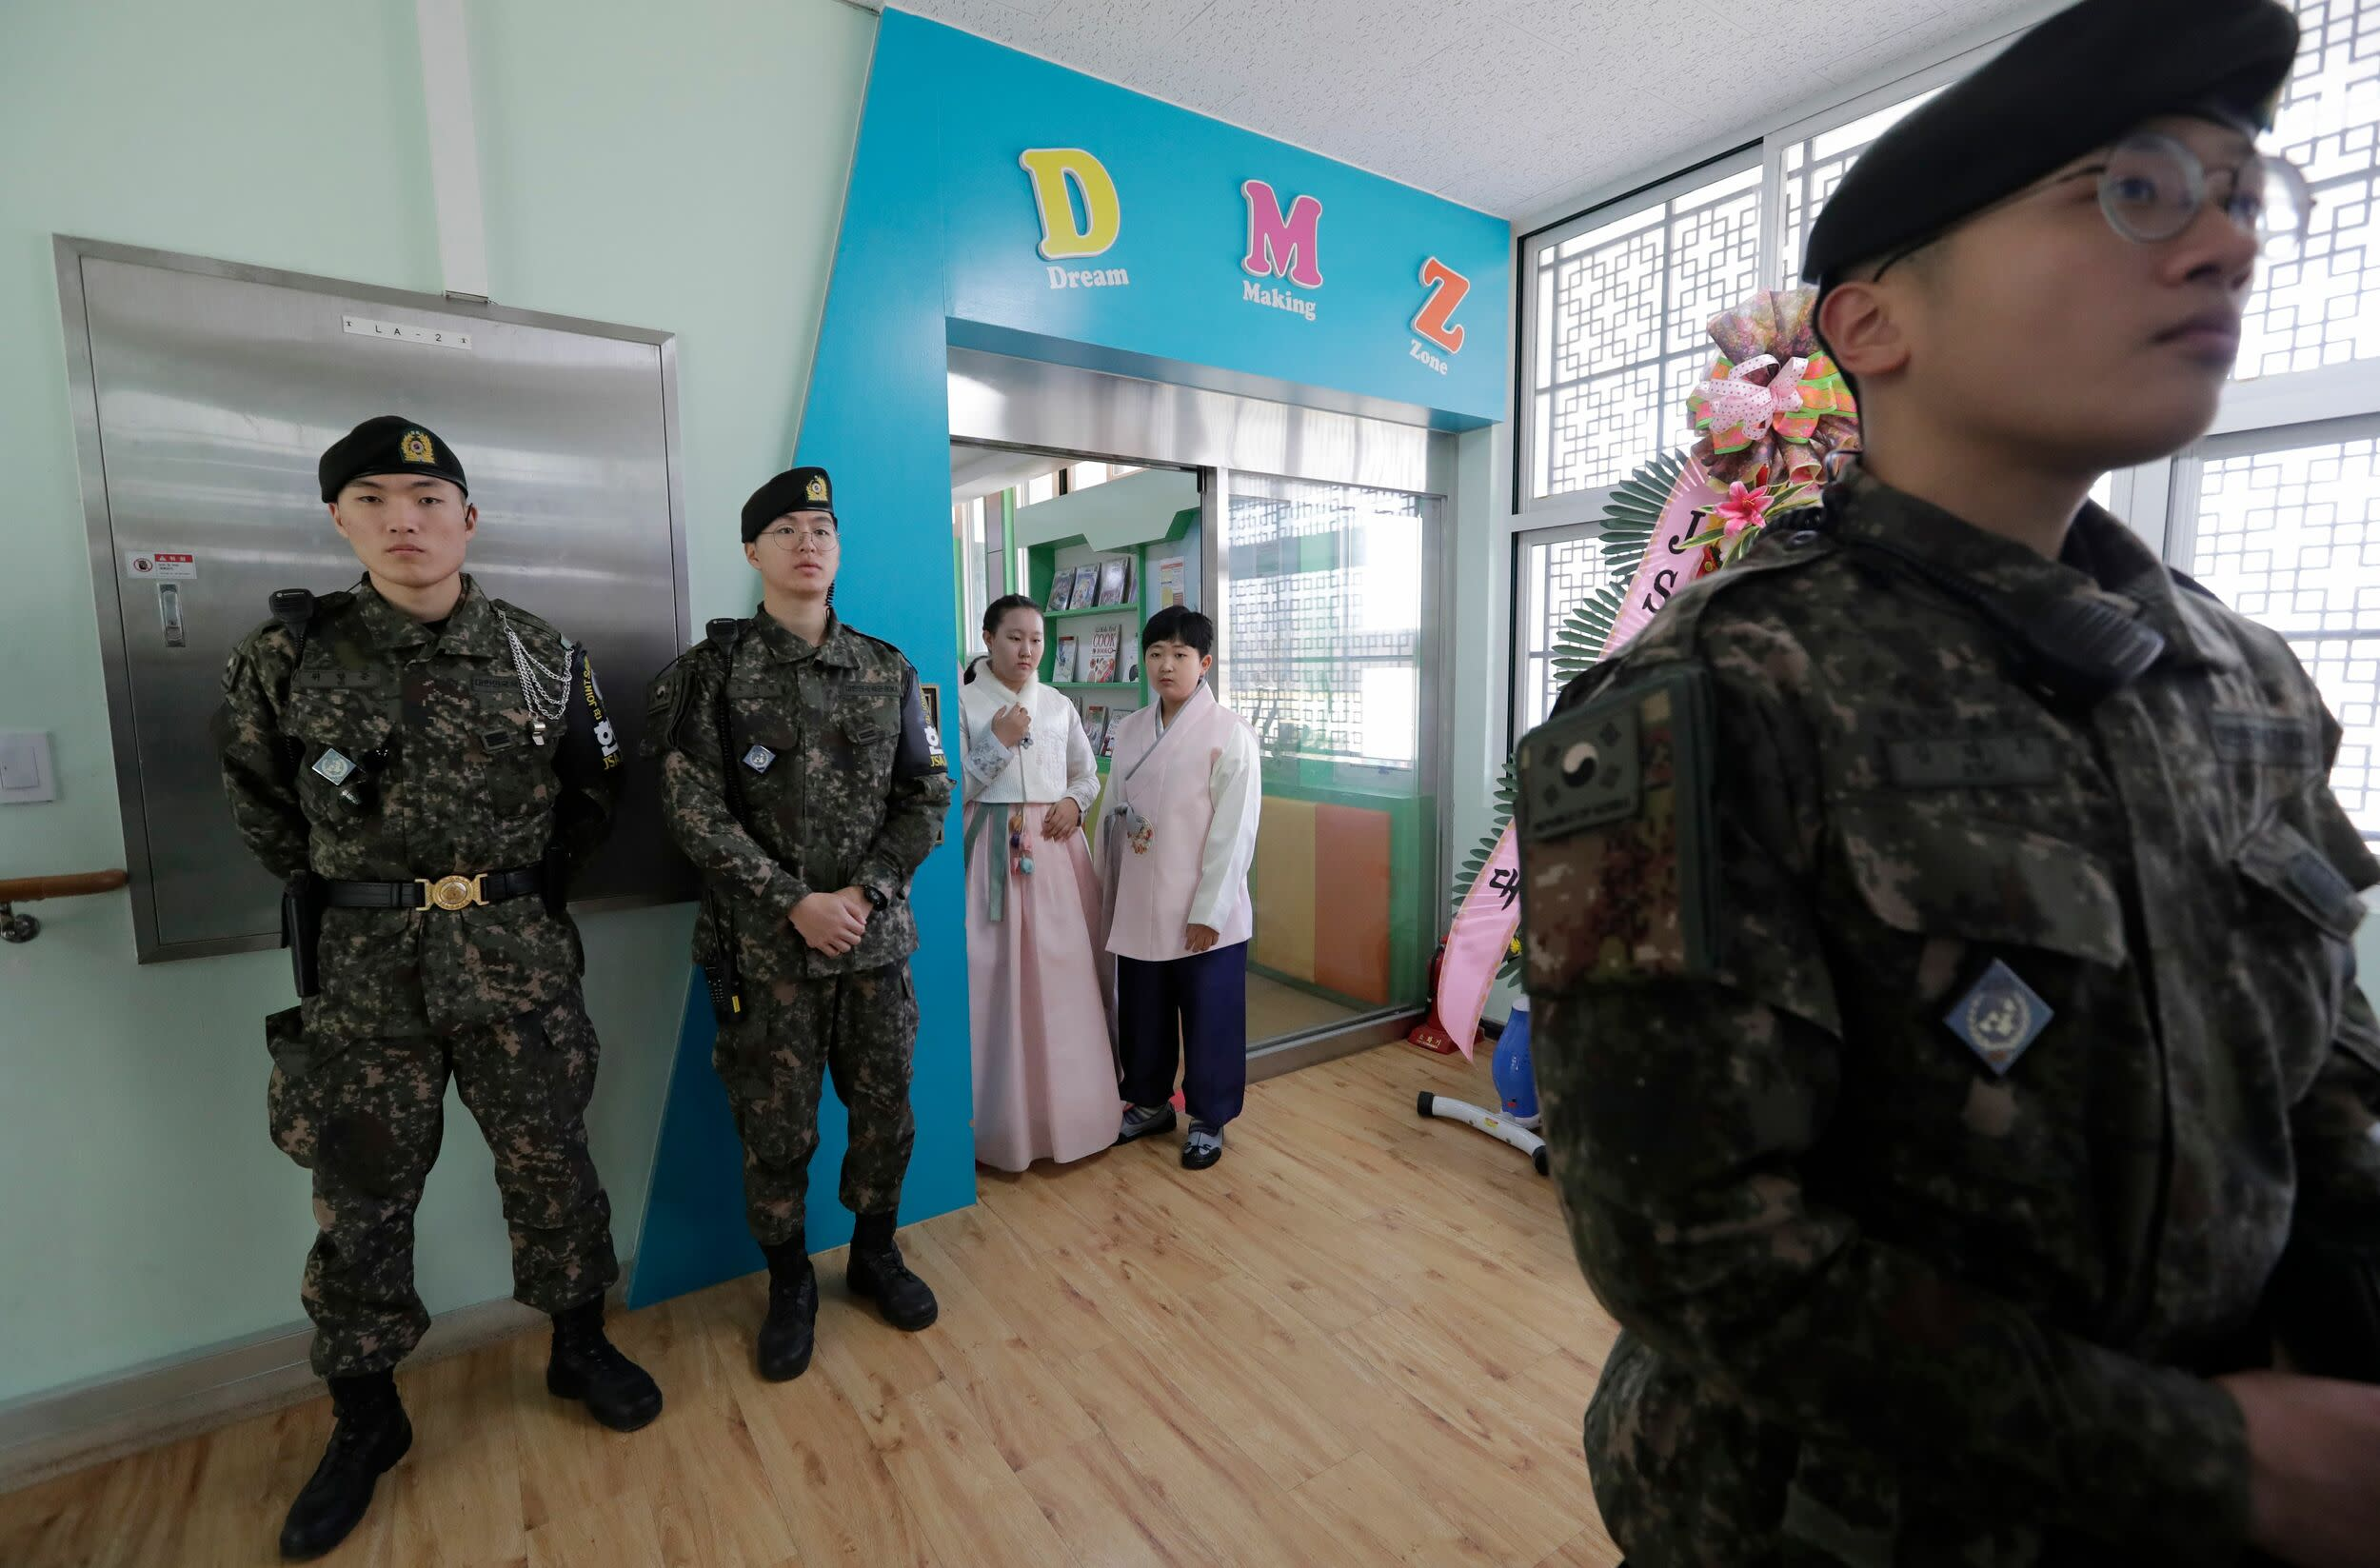 Elementary school Graduates wait to attend a graduation ceremony at Taesungdong freedom village inside the demilitarized zone between North and South Korea, near the border village of Panmunjom in Paju on January 11, 2019. (Photo by Lee Jin-man / POOL / AFP)        (Photo credit should read LEE JIN-MAN/AFP/Getty Images)